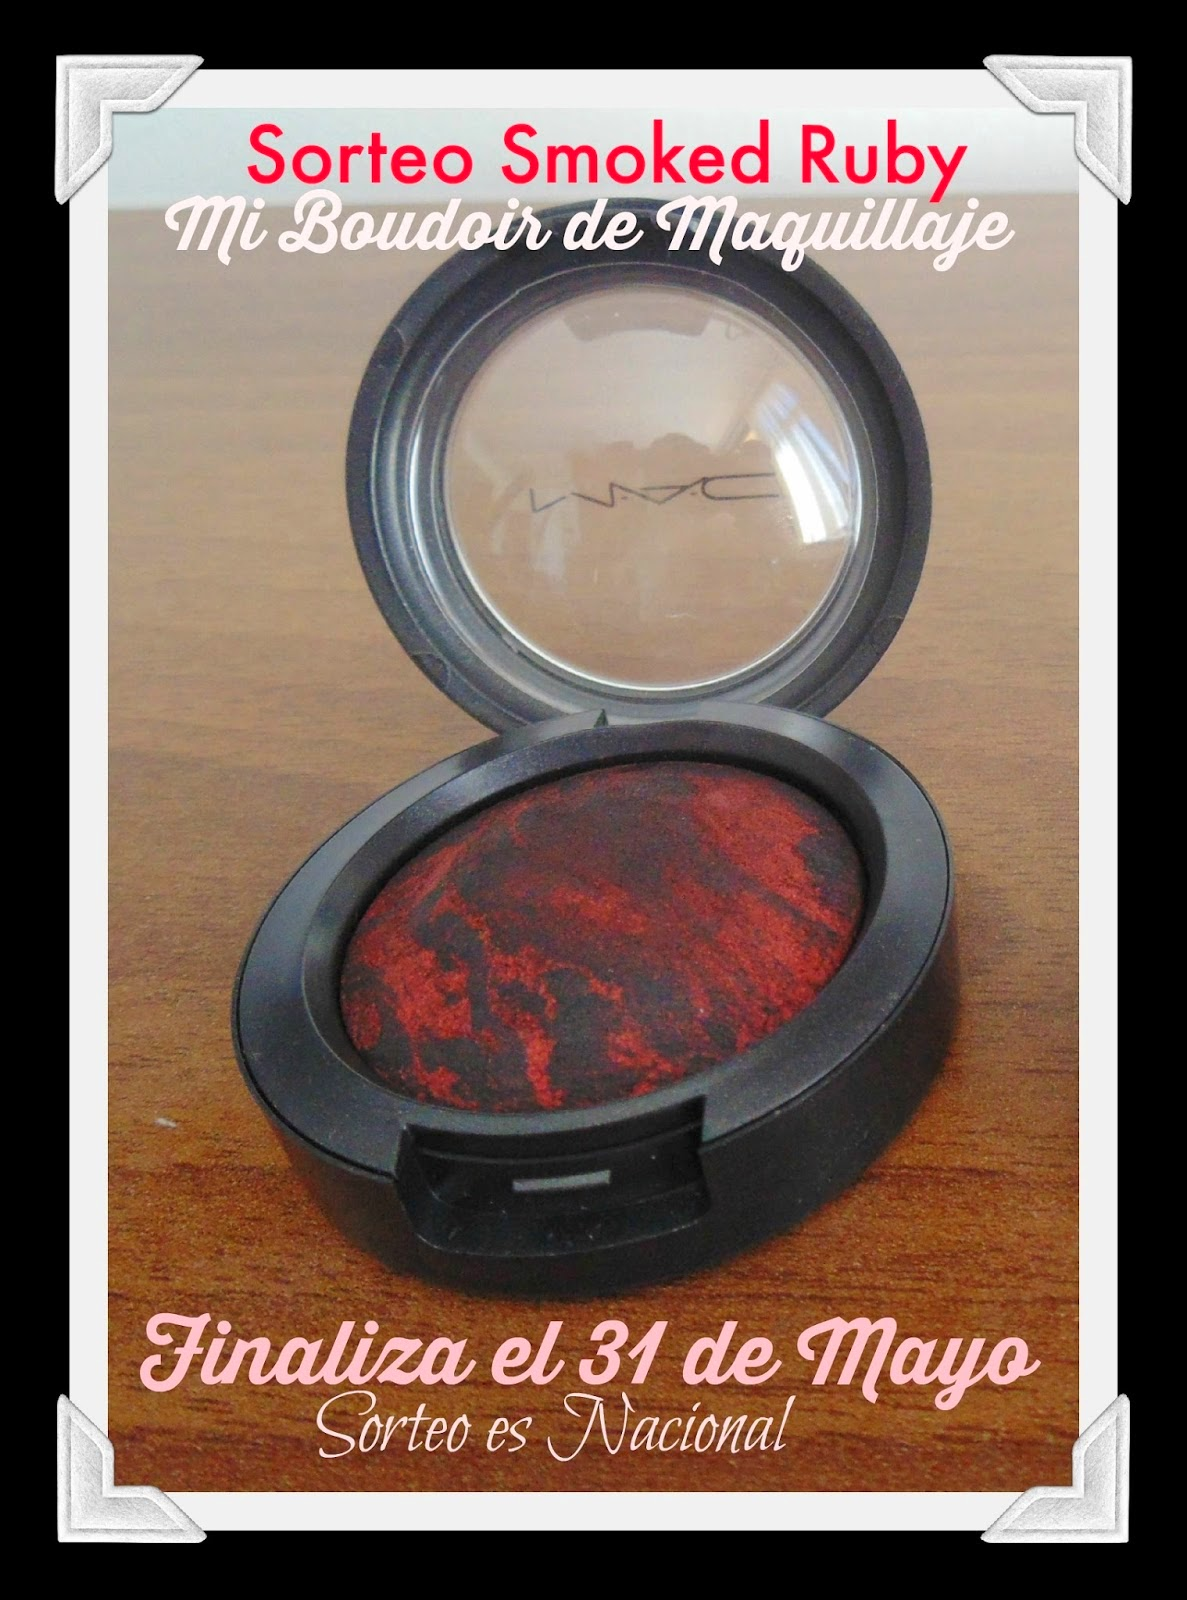 Sorteo Smoked Ruby